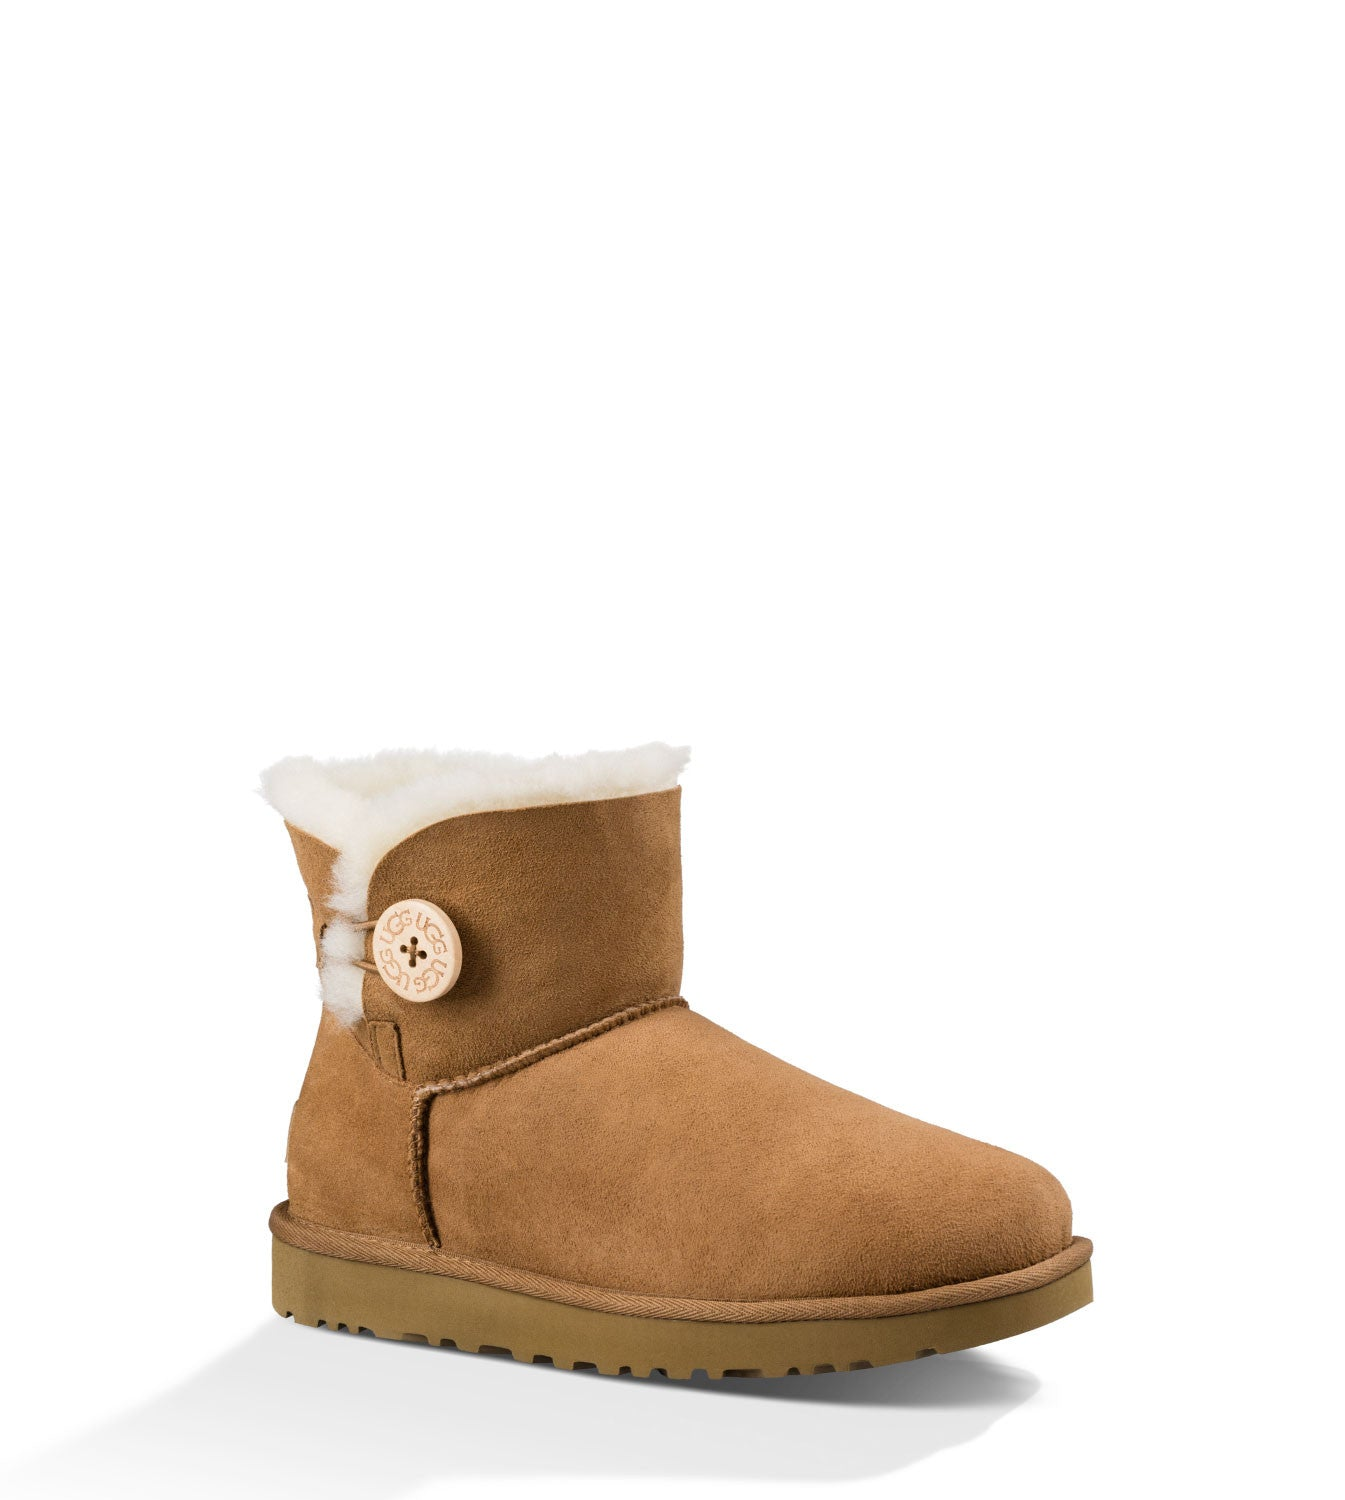 UGG Australia Women's Mini Bailey Button II in Chestnut